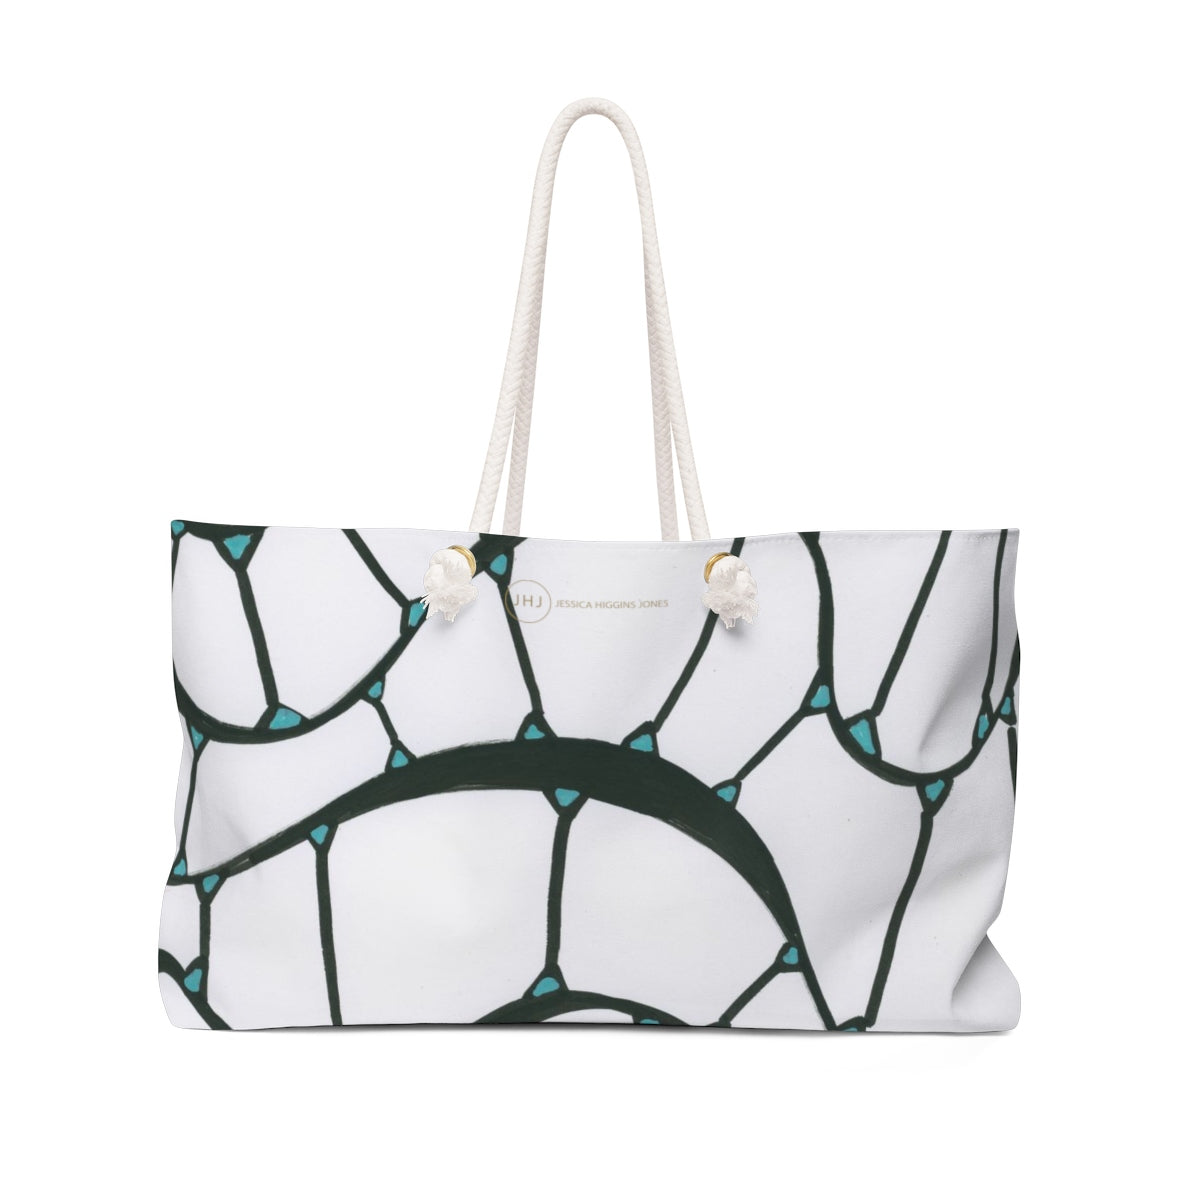 JESSSICA HIGGINS JONES ART ALGAE TOTE BAG